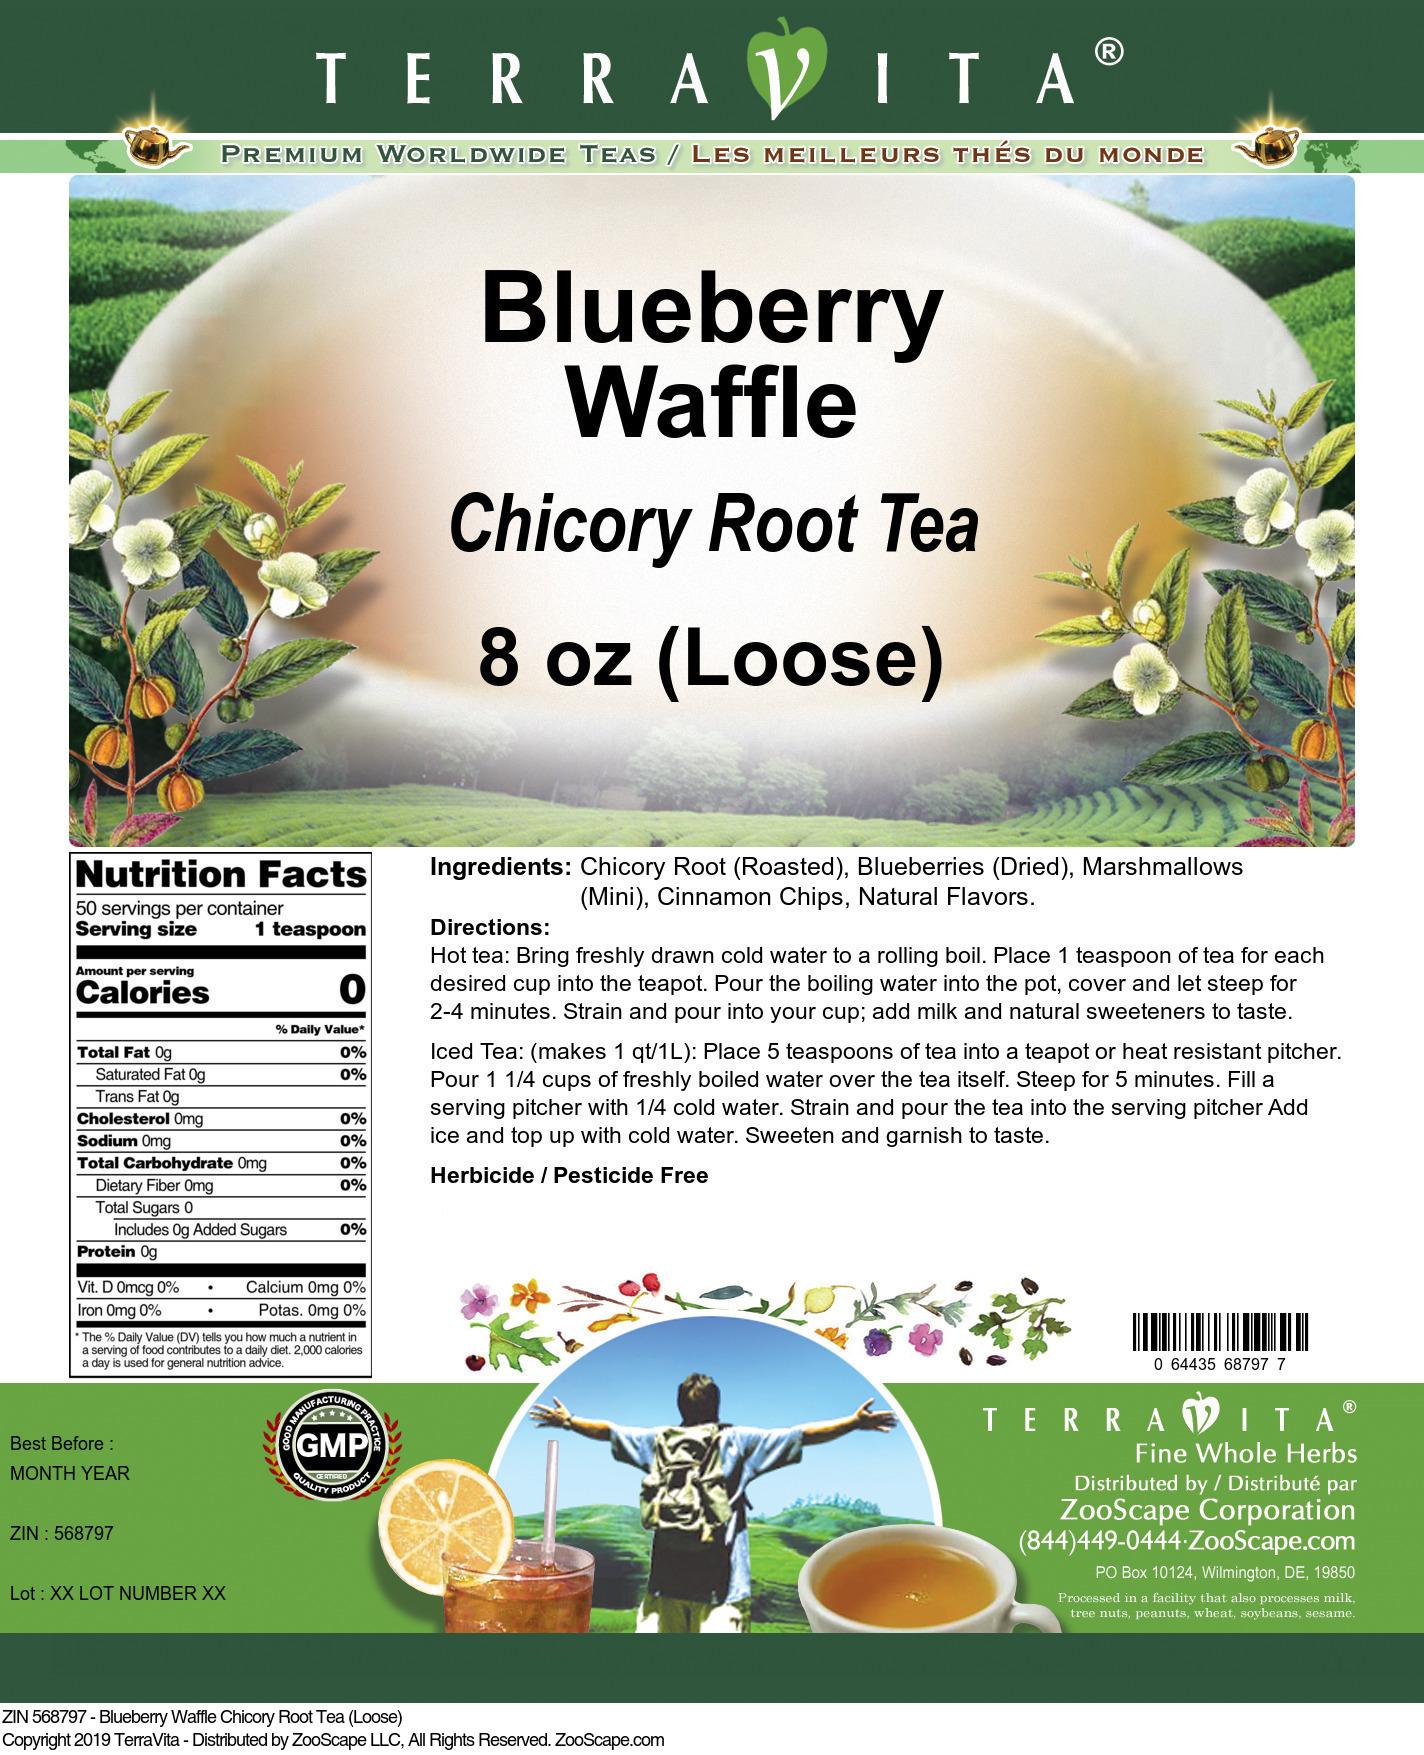 Blueberry Waffle Chicory Root Tea (Loose)